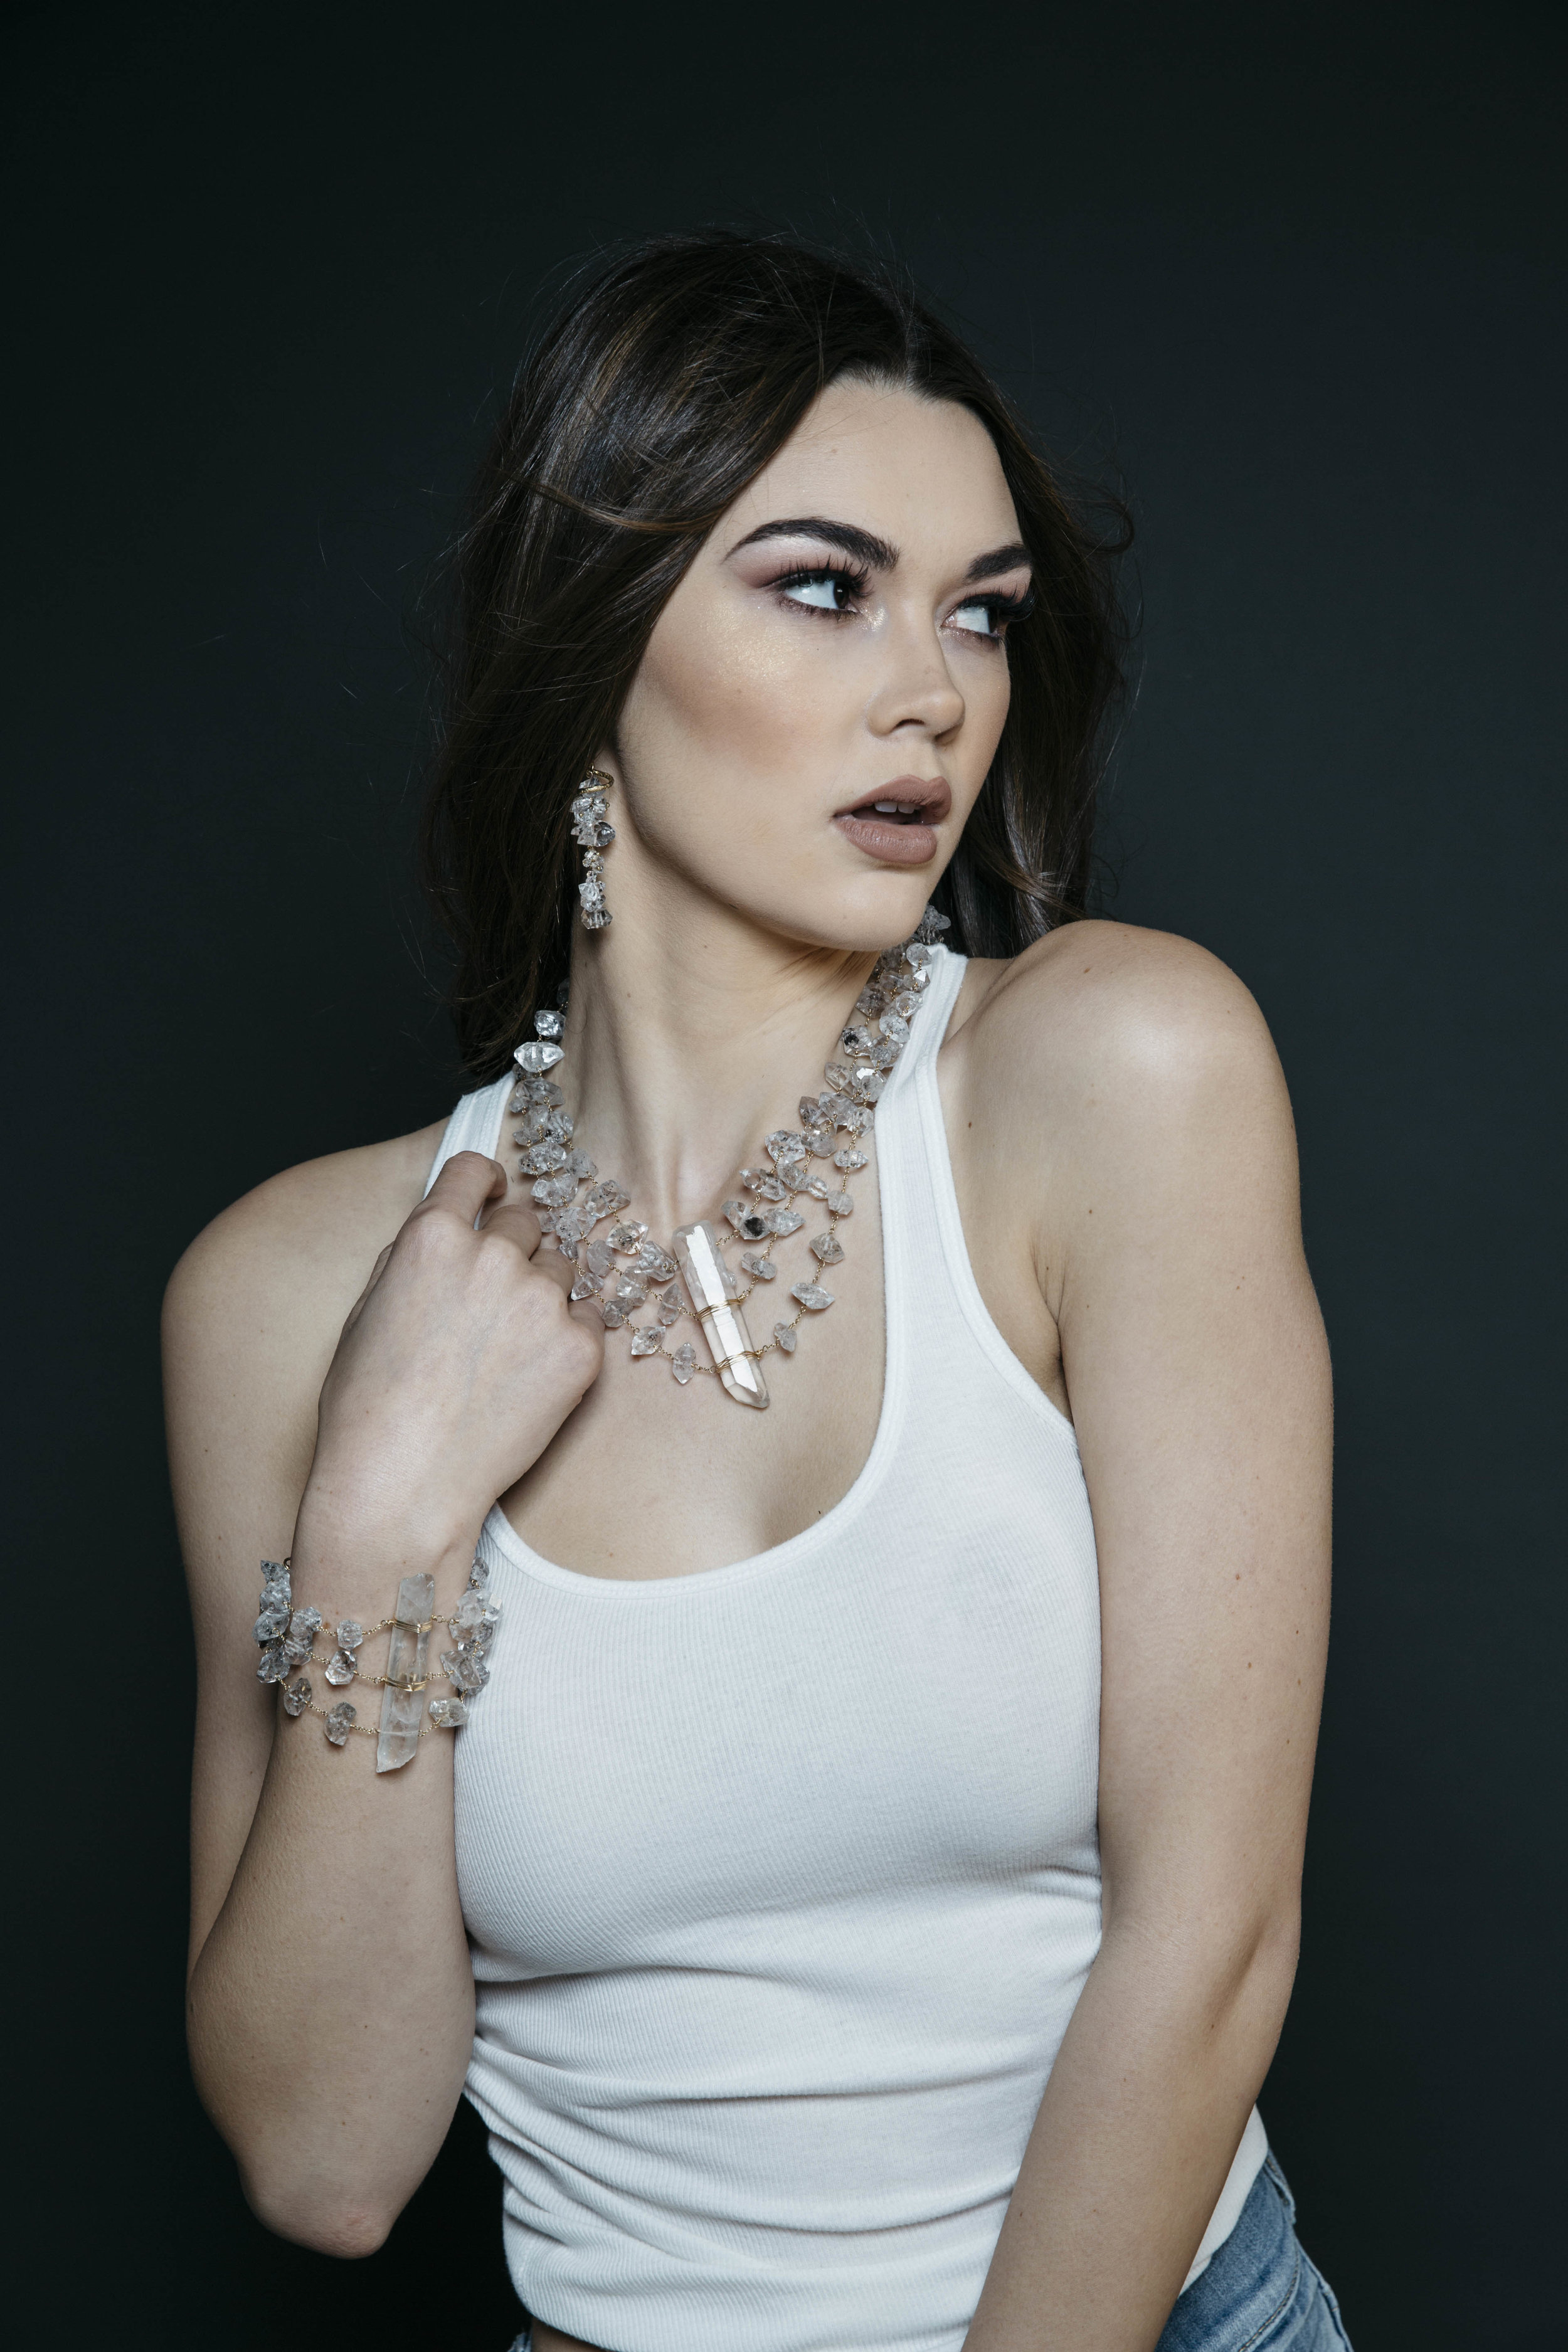 Model wearing a triple strand herkimer diamond statement necklace with a large crystal point pendant